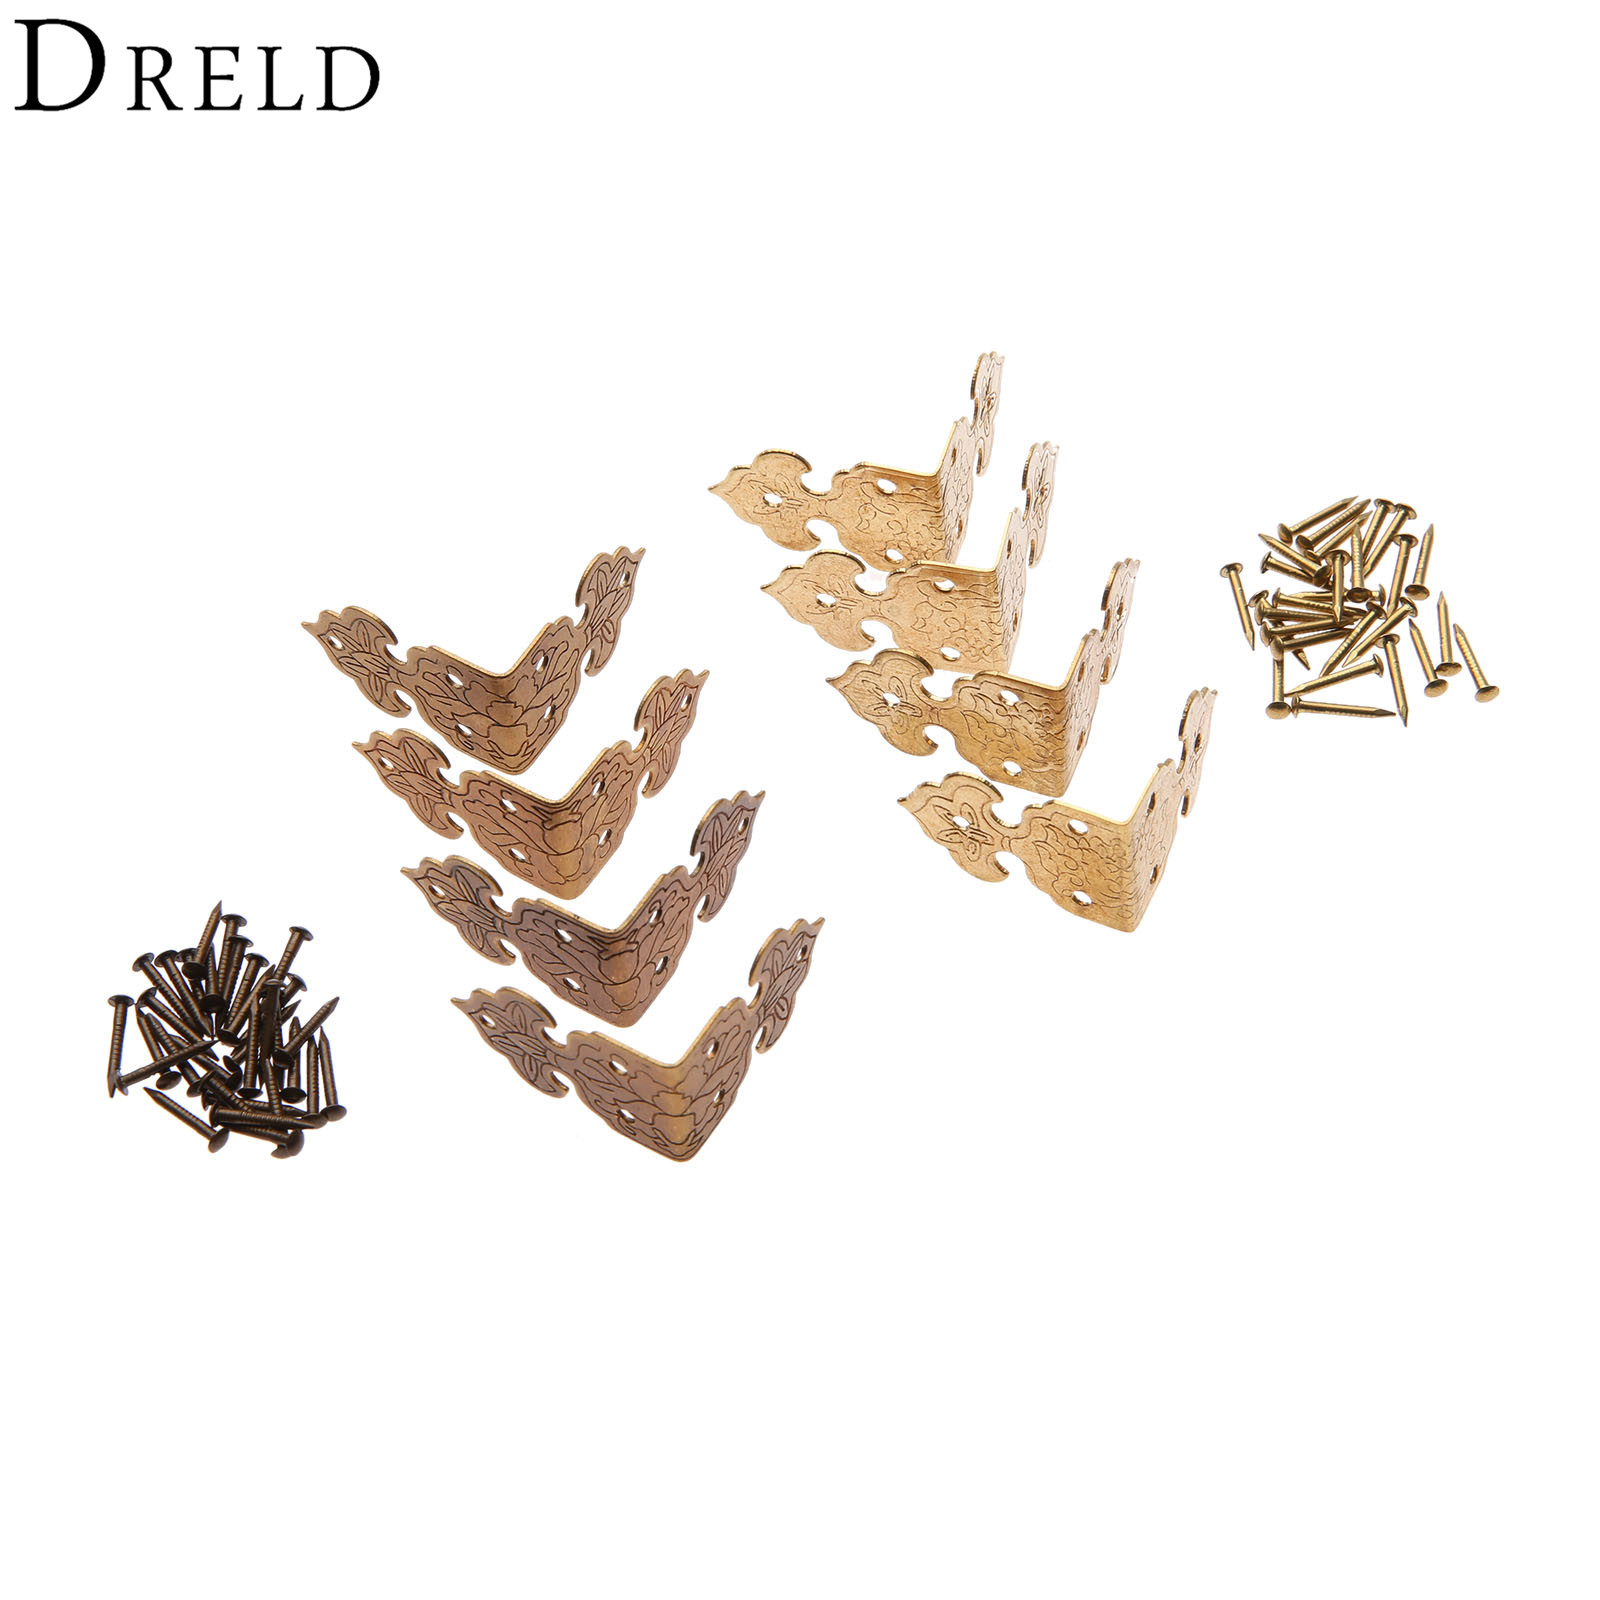 Us 2 99 20 Off Dreld 4pcs Brass Wood Box Feet Leg Corner Protector Chinese Furniture Hardware Metal Crafts Decorative Bracket For Cabinet Trunk In